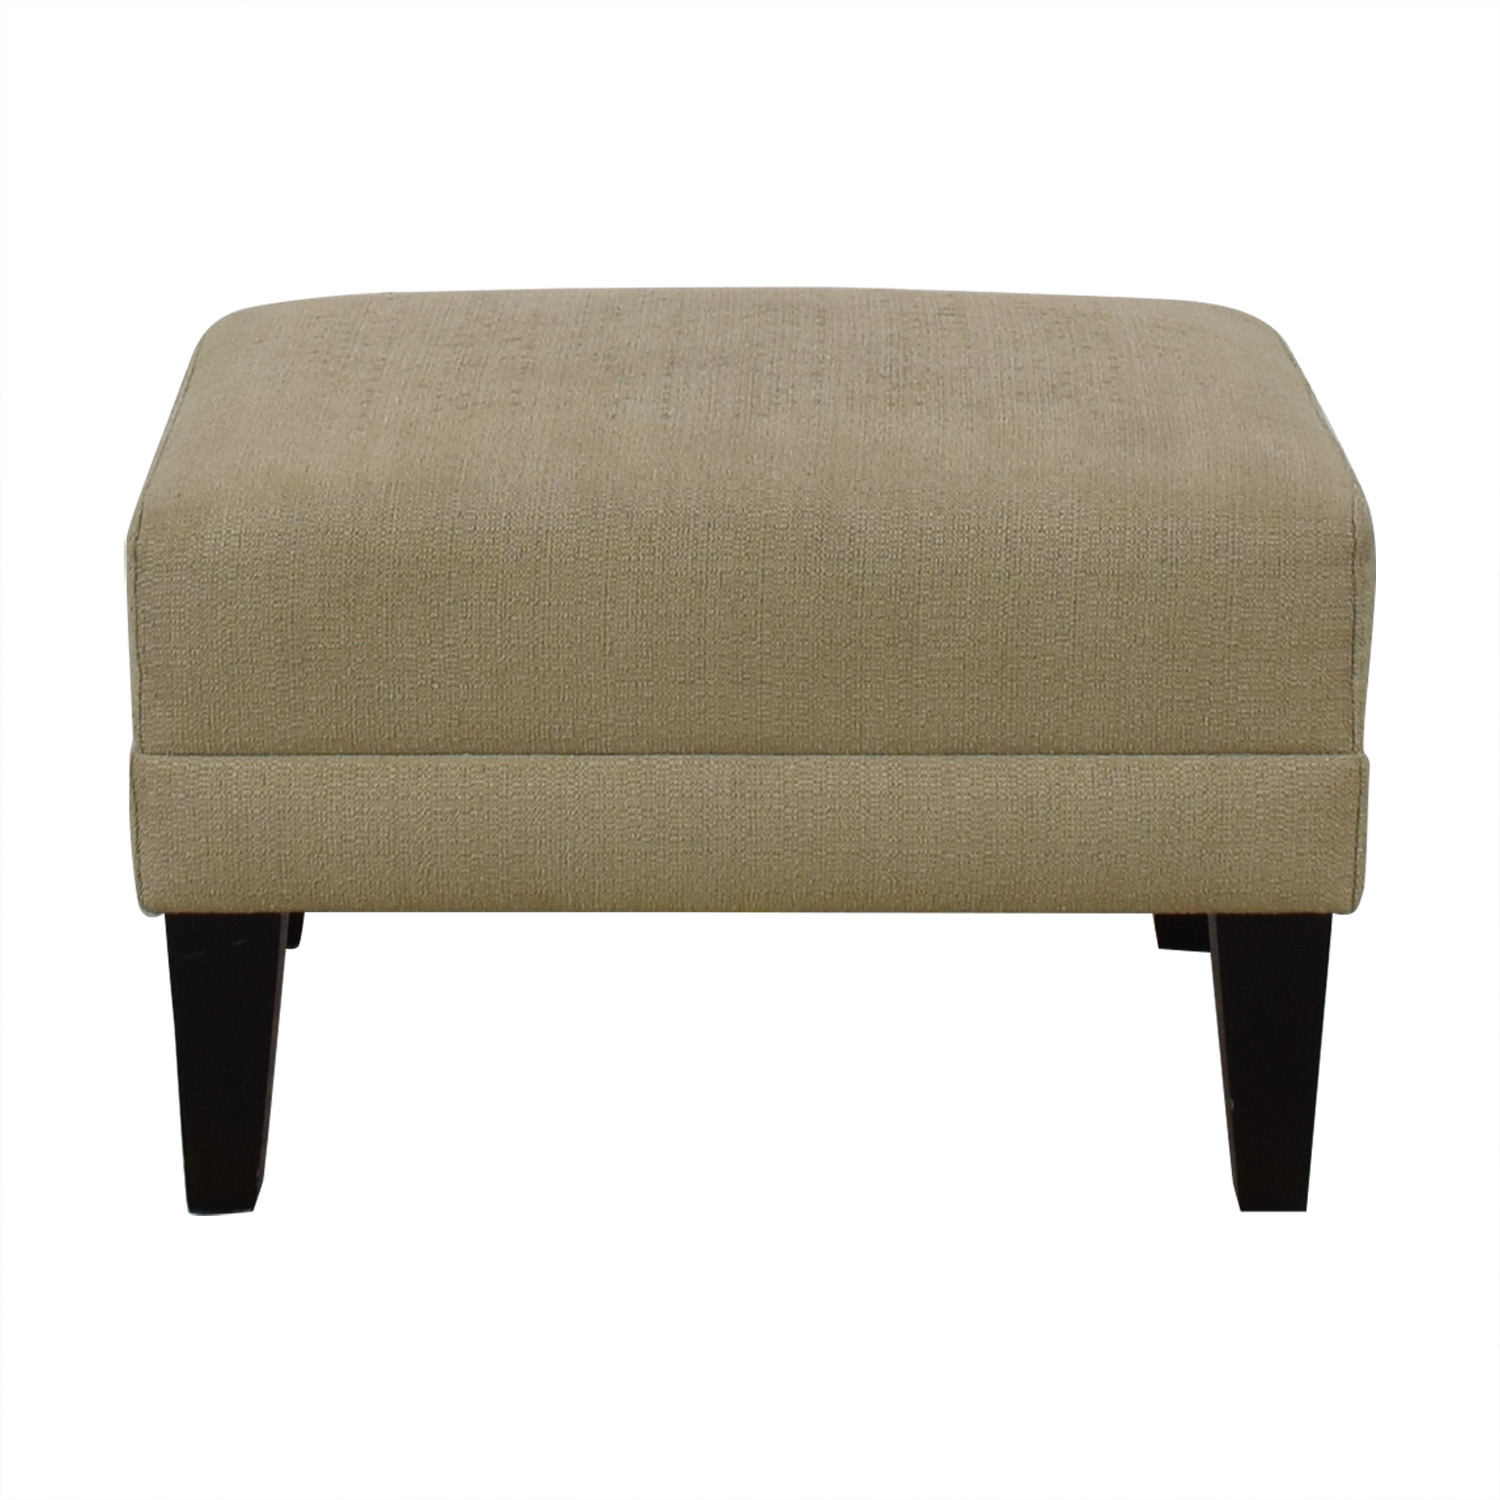 shop Crate & Barrel Margot Ottoman Crate & Barrel Ottomans